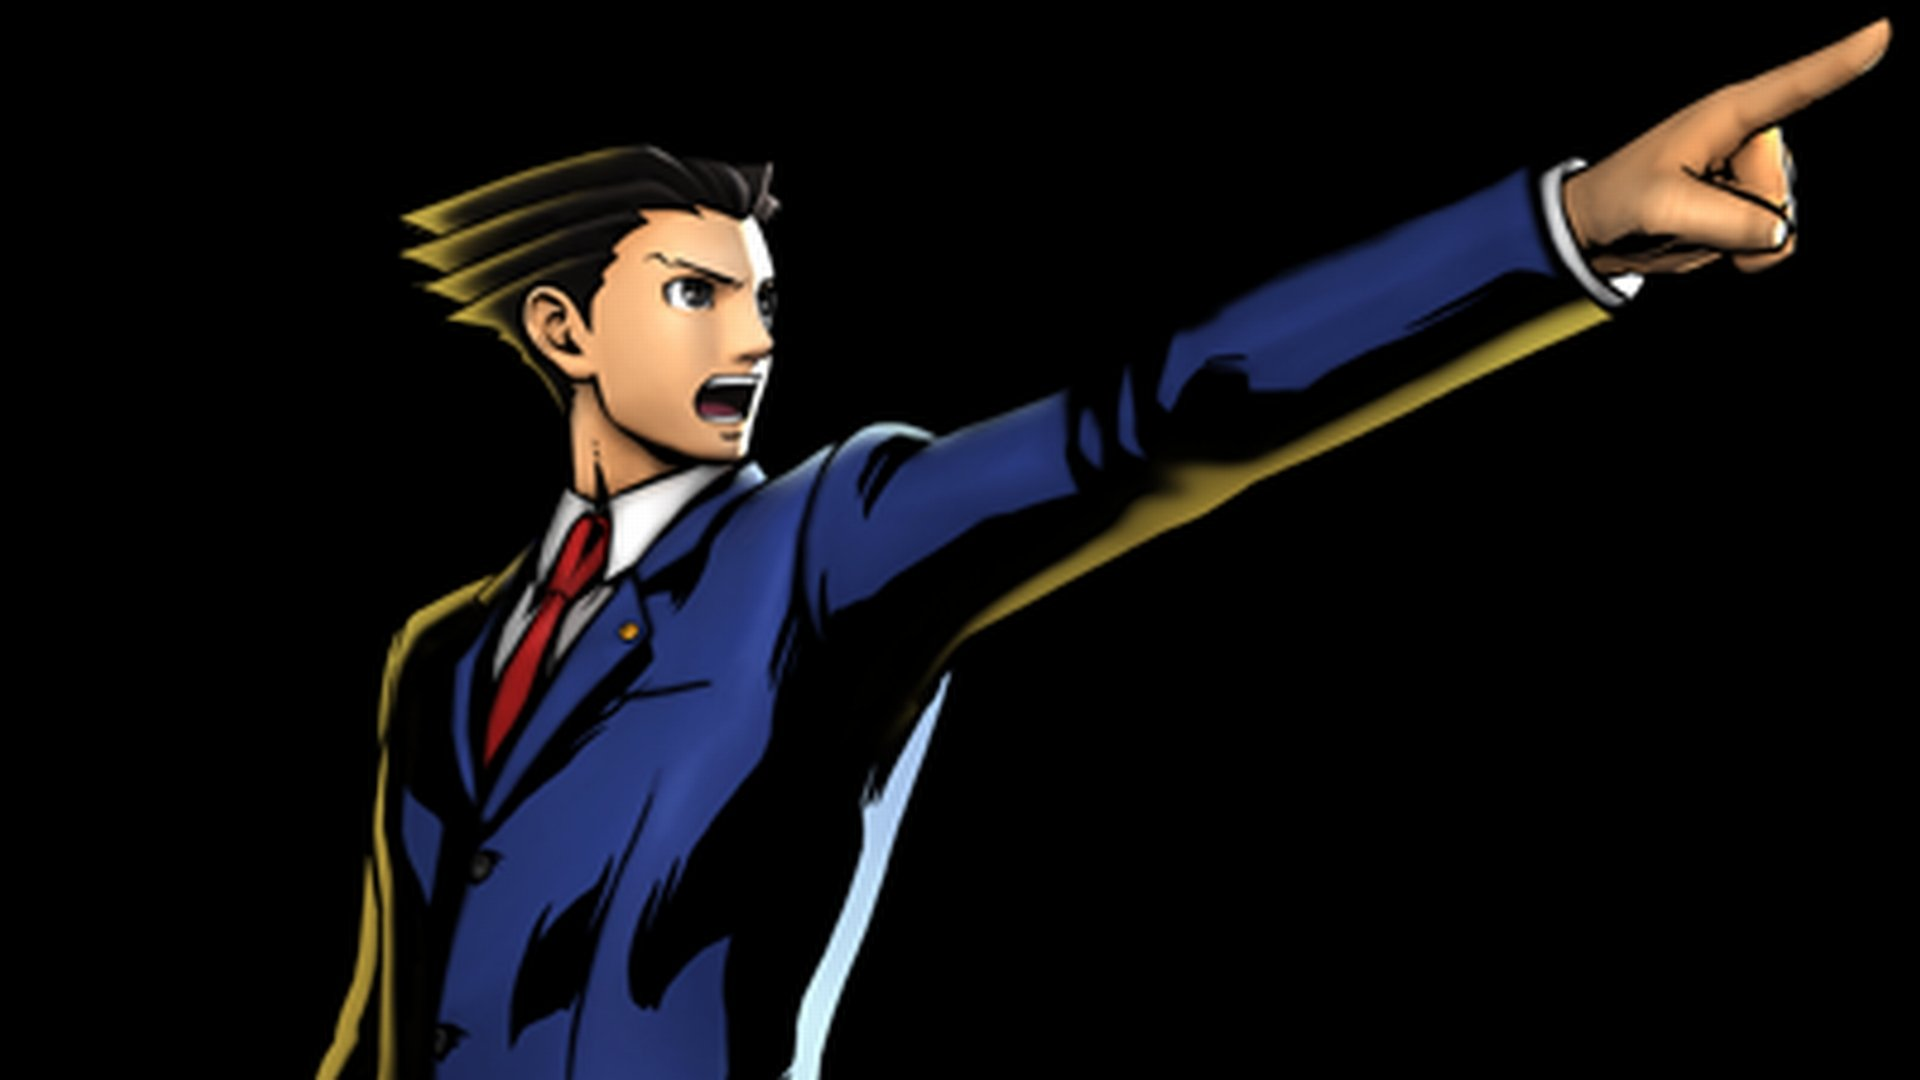 20 Phoenix Wright Ace Attorney HD Wallpapers 1920x1080